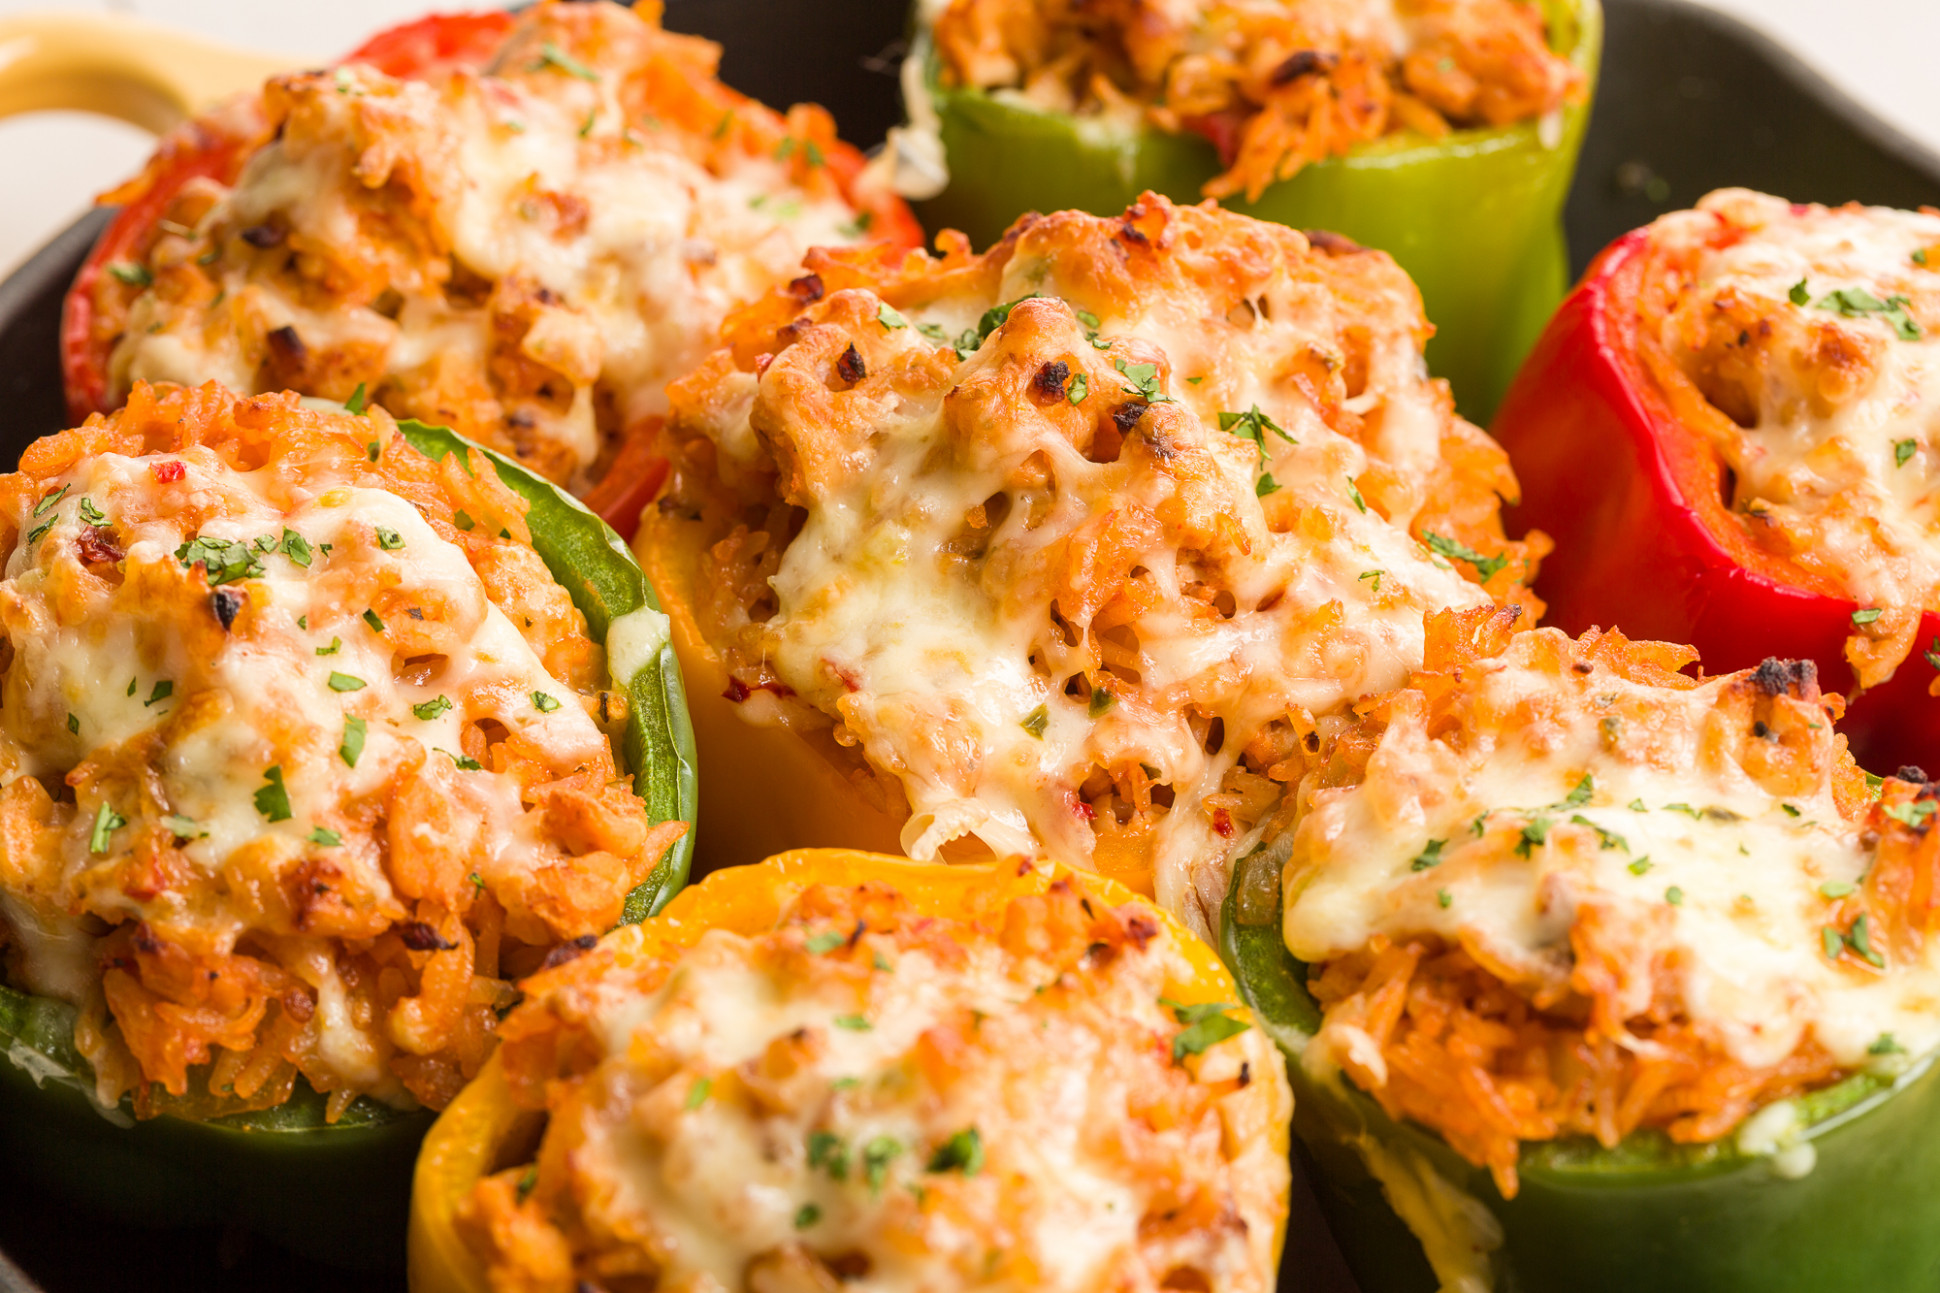 Best Ground Turkey Stuffed Peppers Recipe - How to Make ..